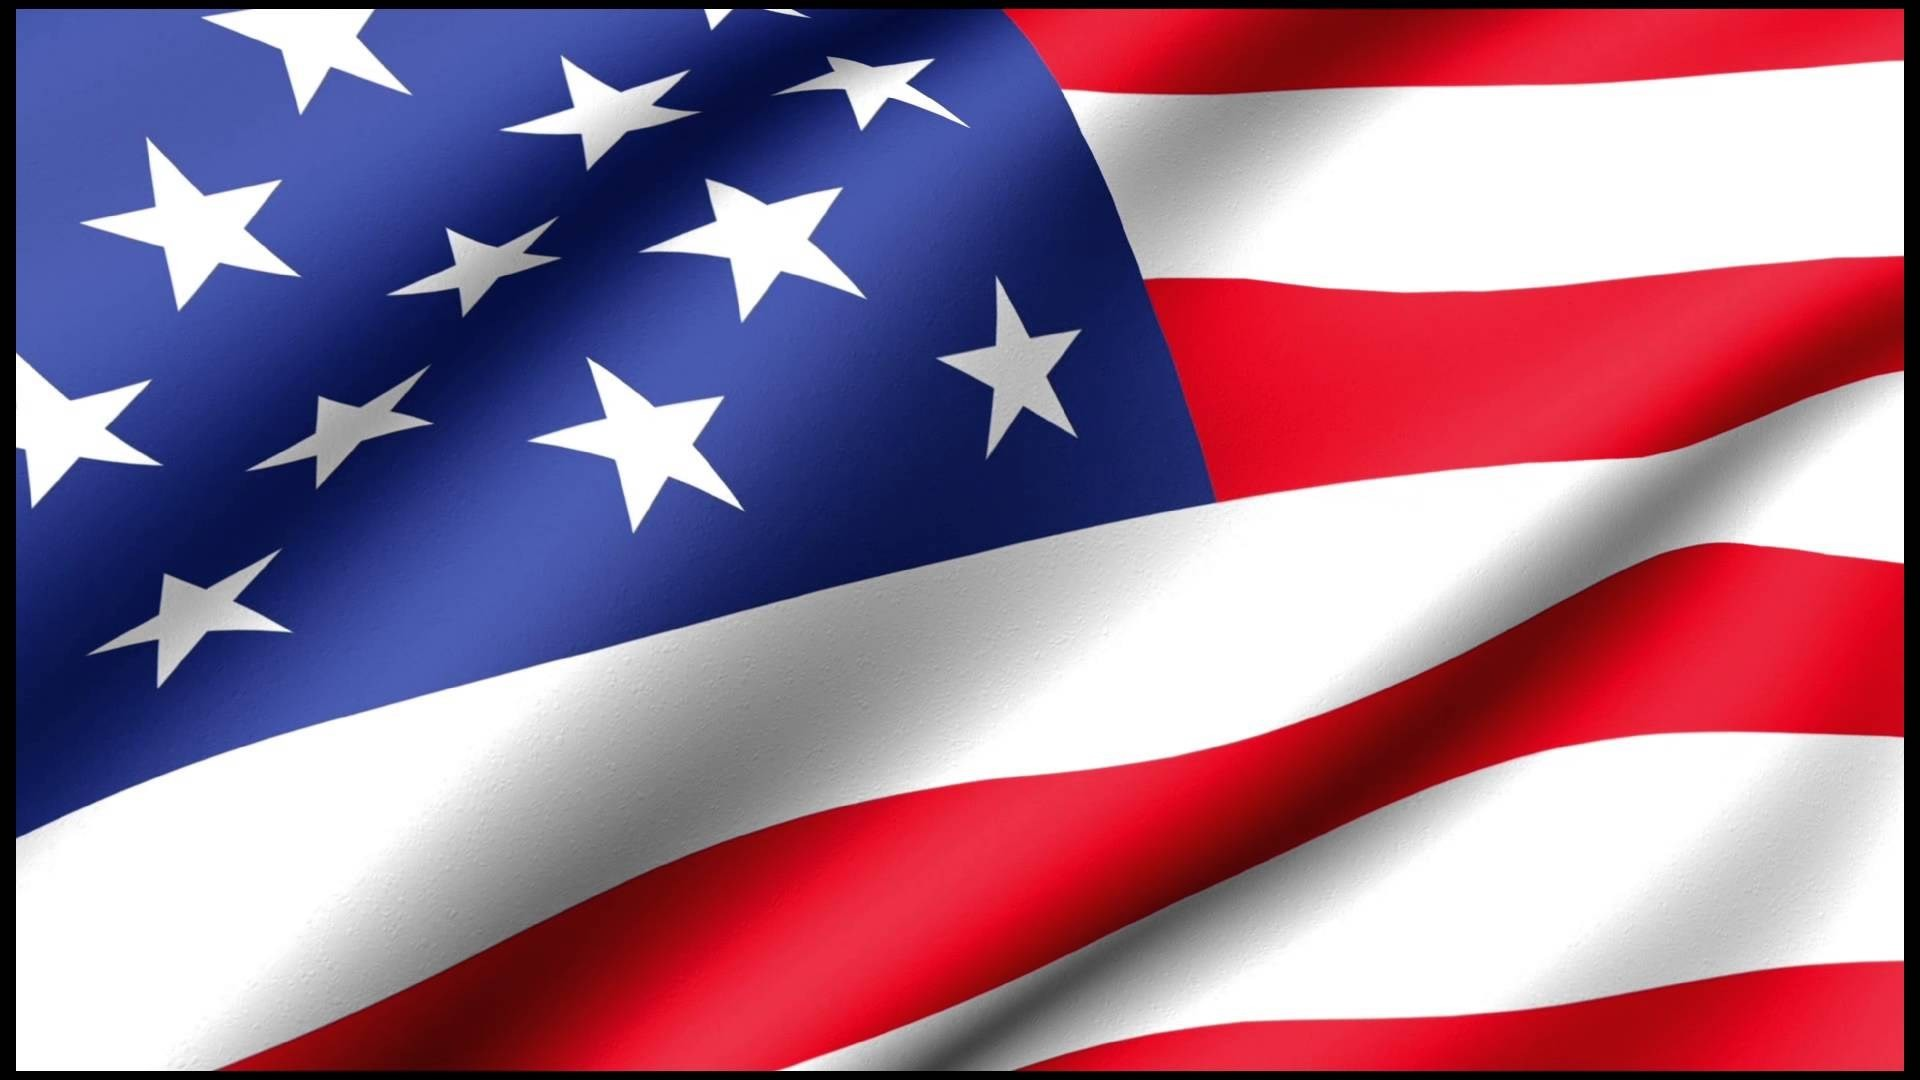 american flag free wallpaper images